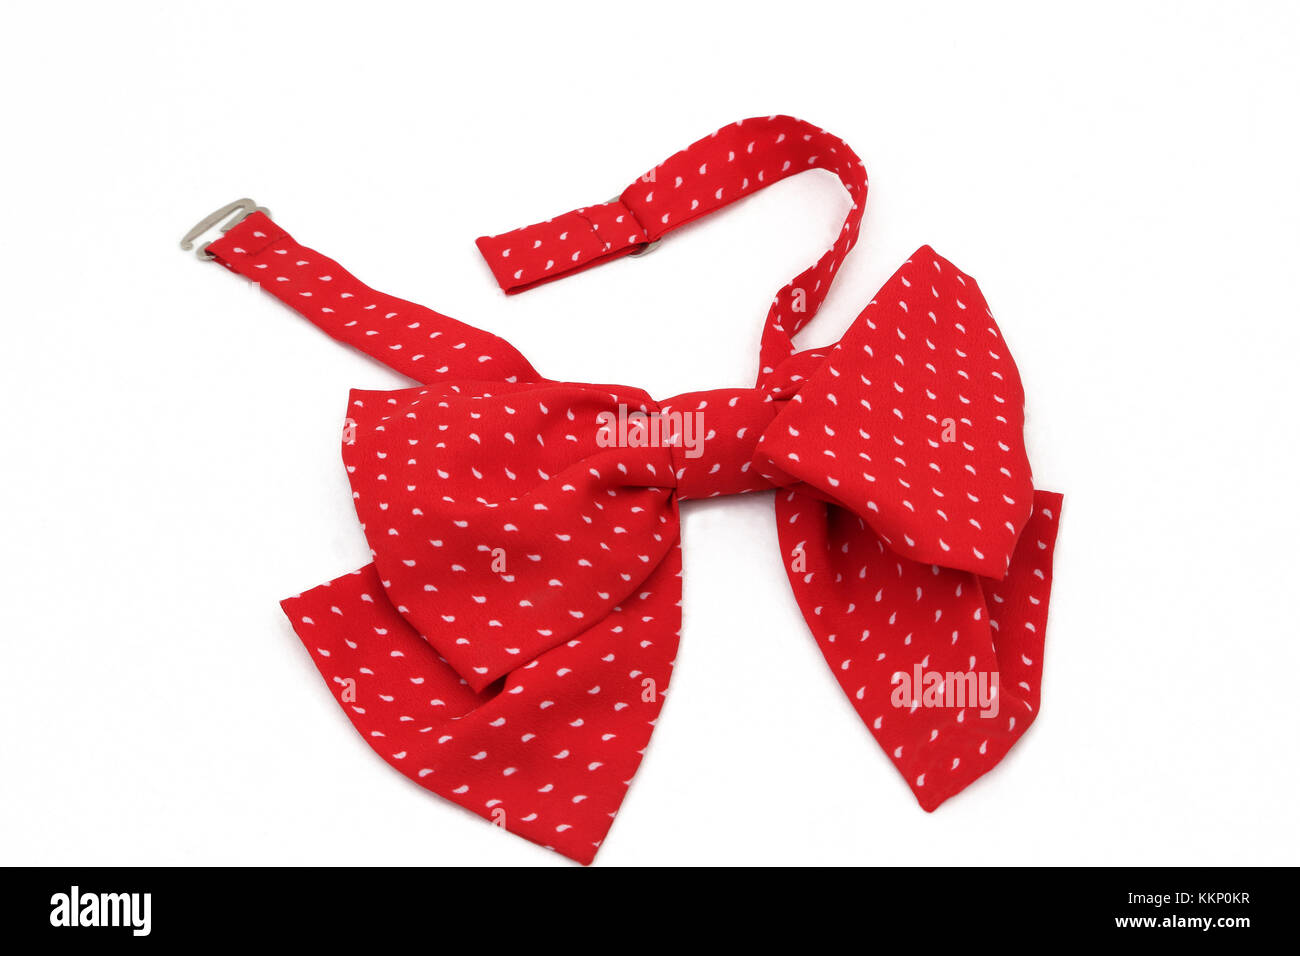 Red Bow Tie with White Spots - Stock Image